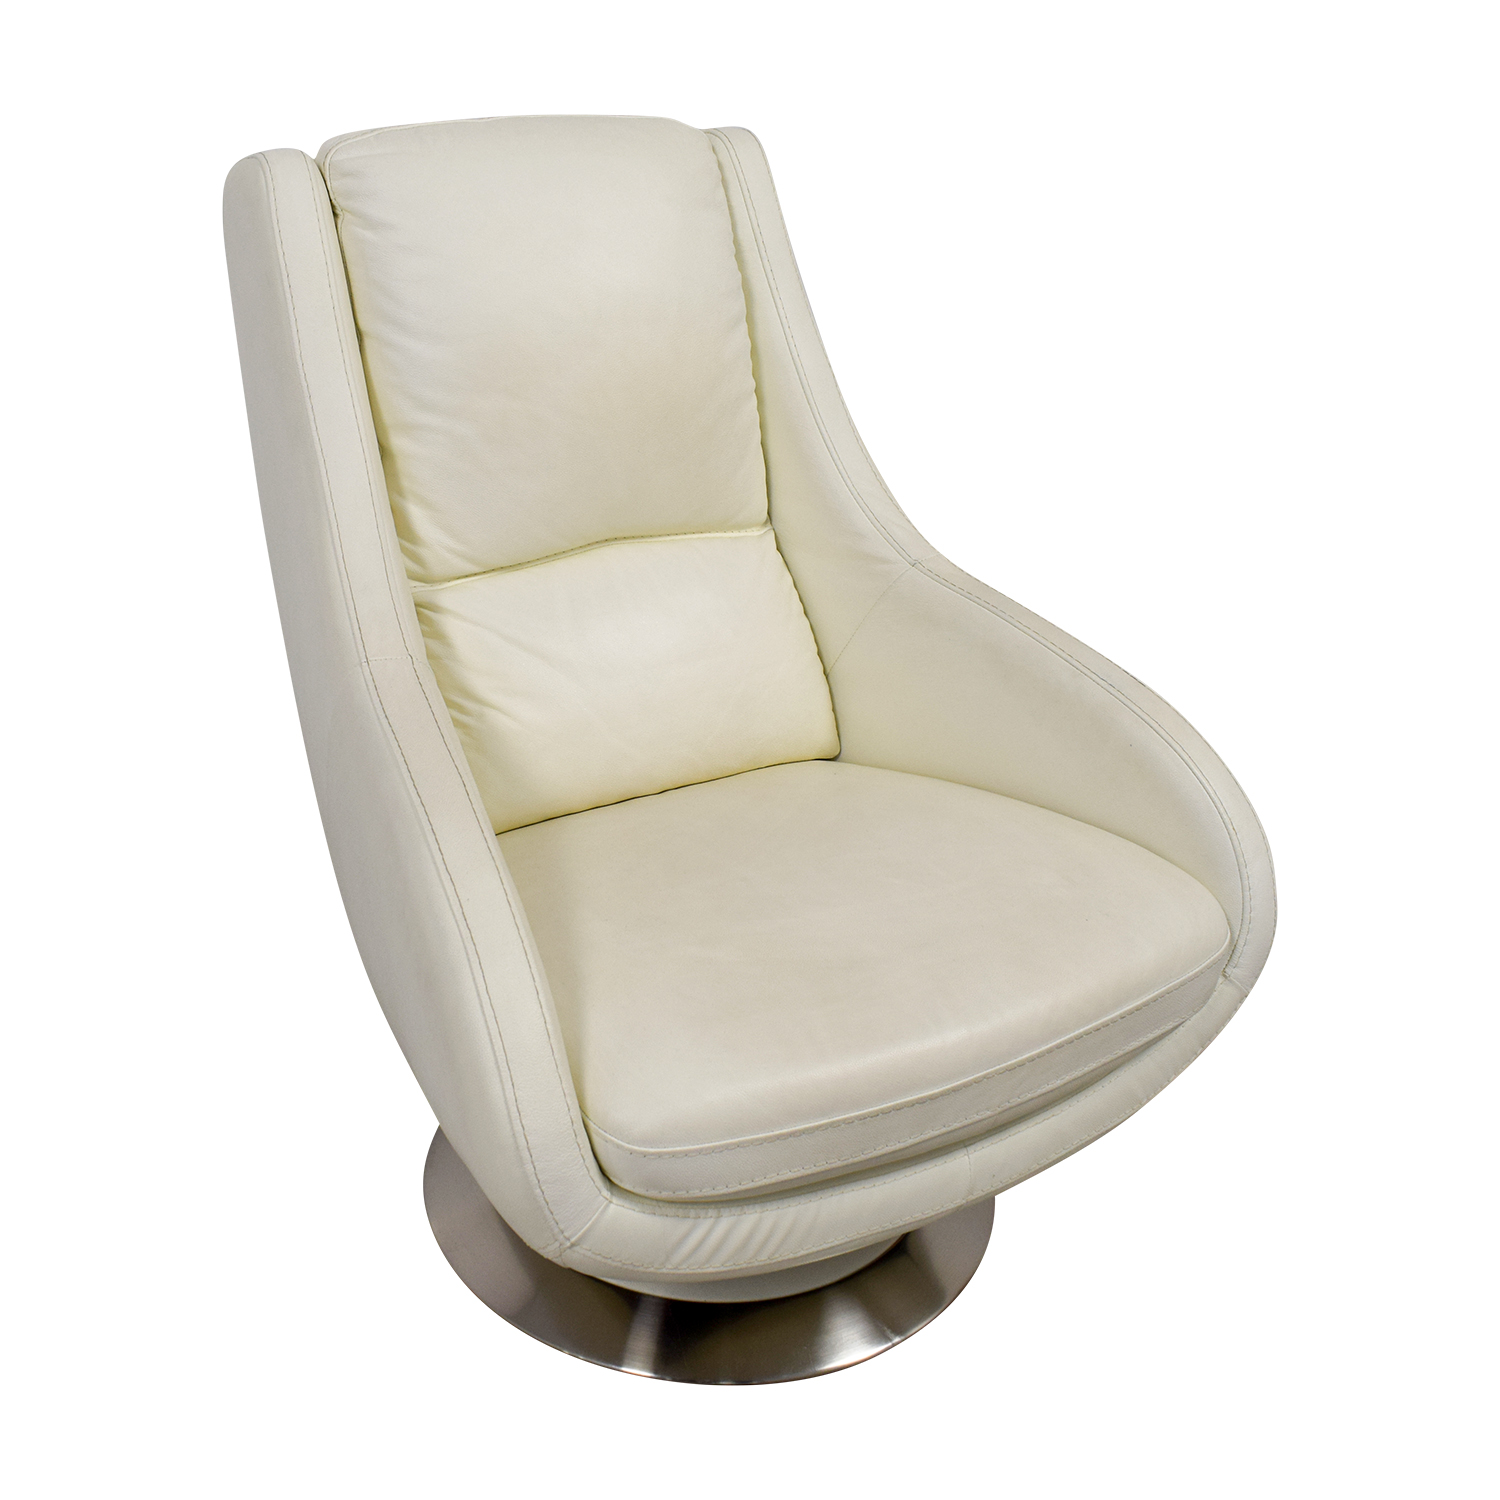 Design Within Reach White Leather Swivel Chair / Chairs